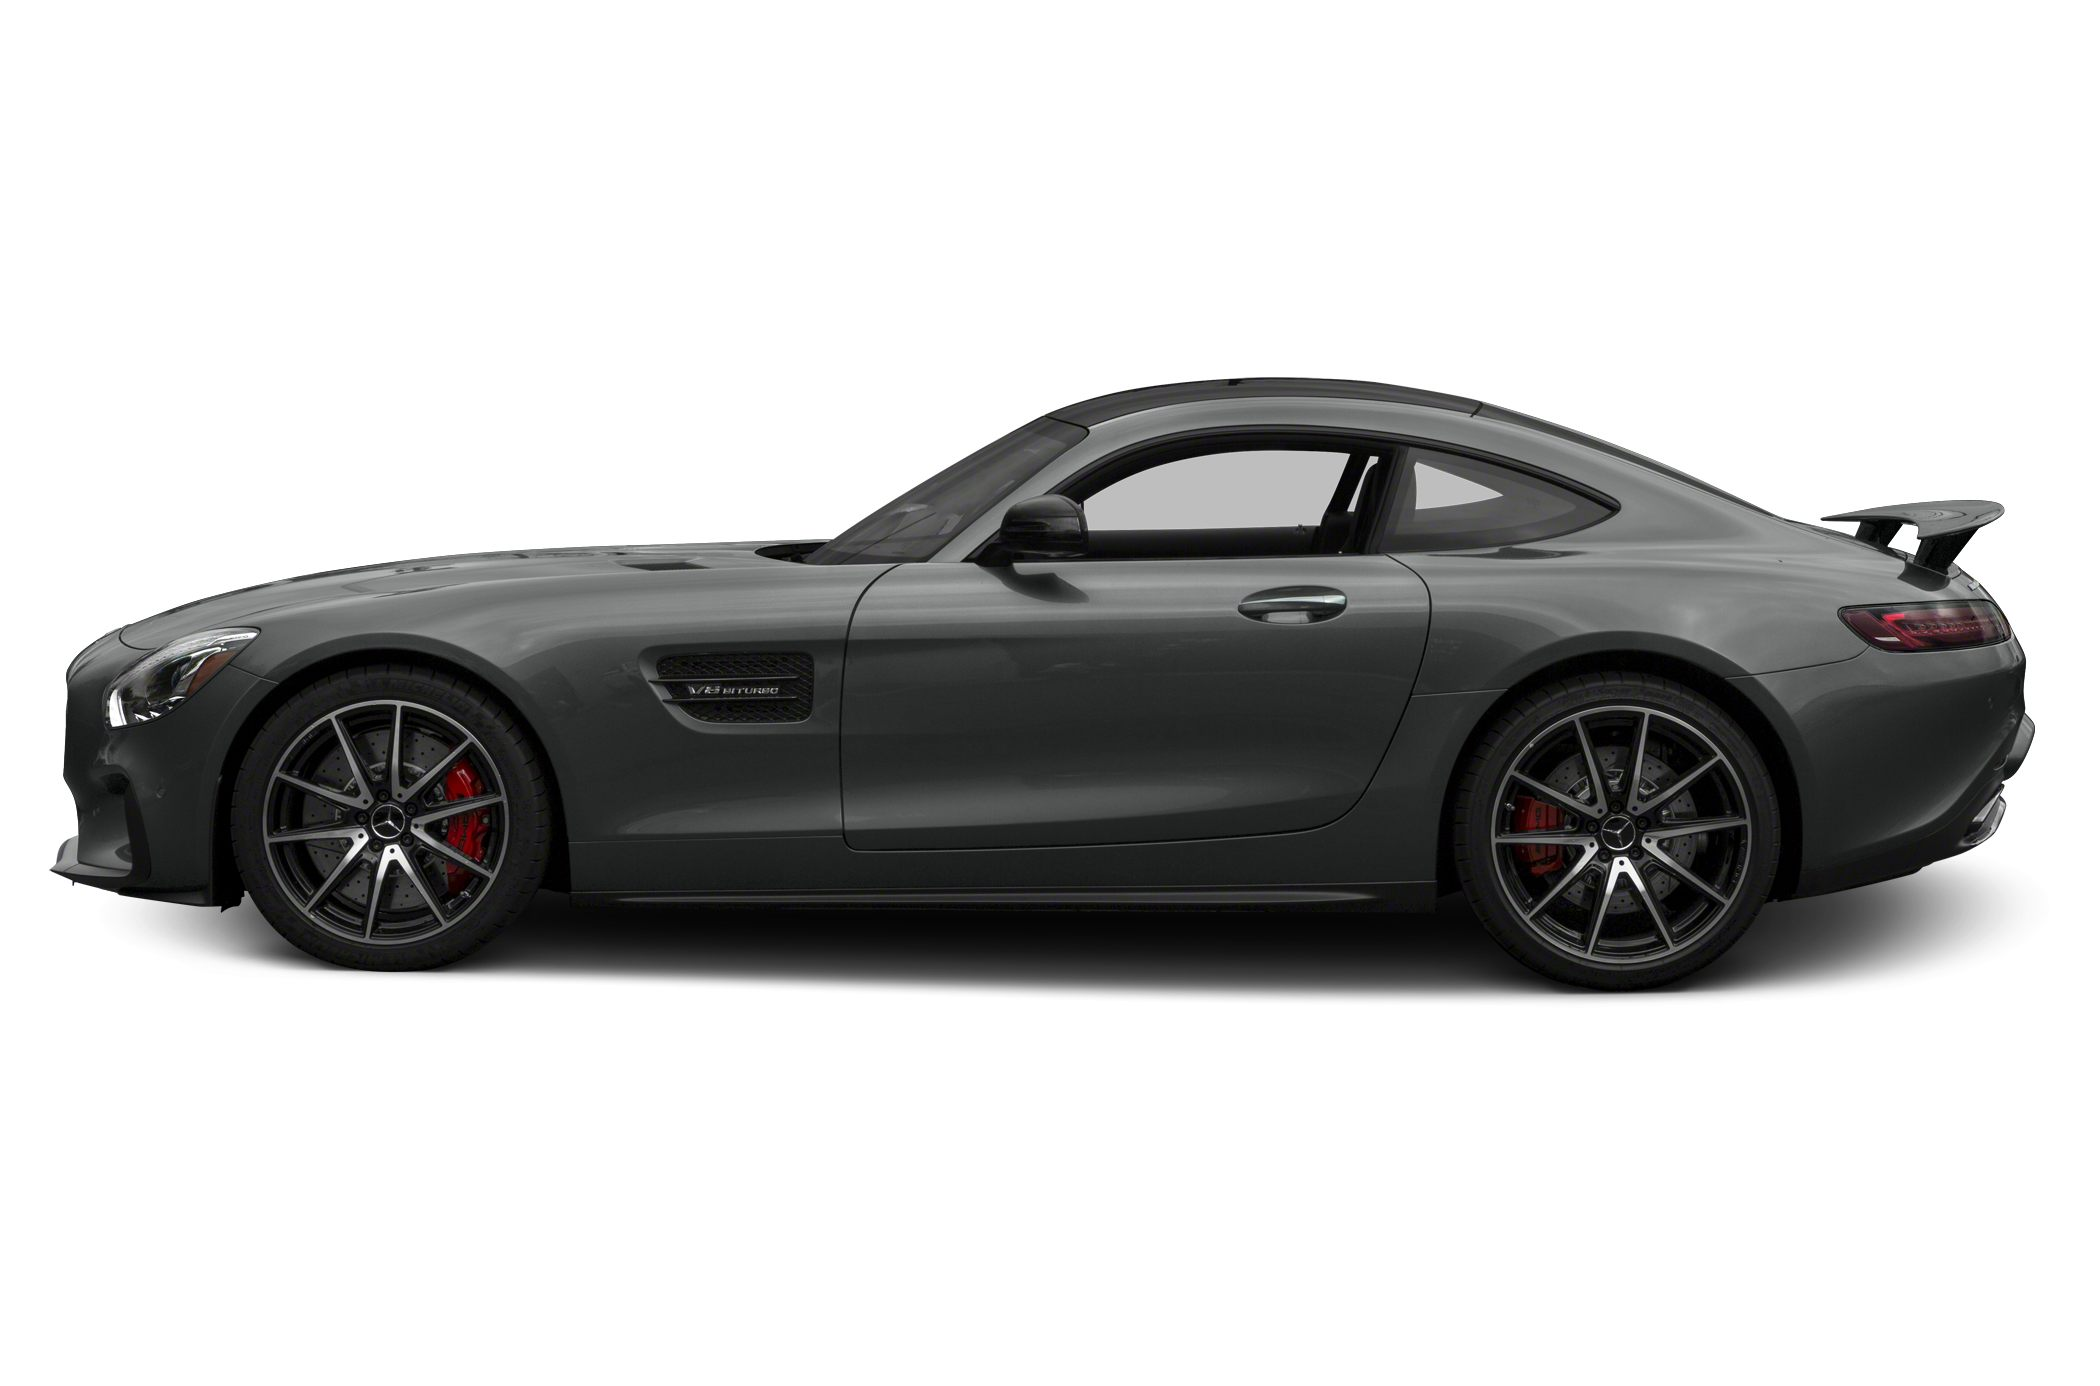 Mercedes sls amg gt price autos post for 2017 mercedes benz gts amg price